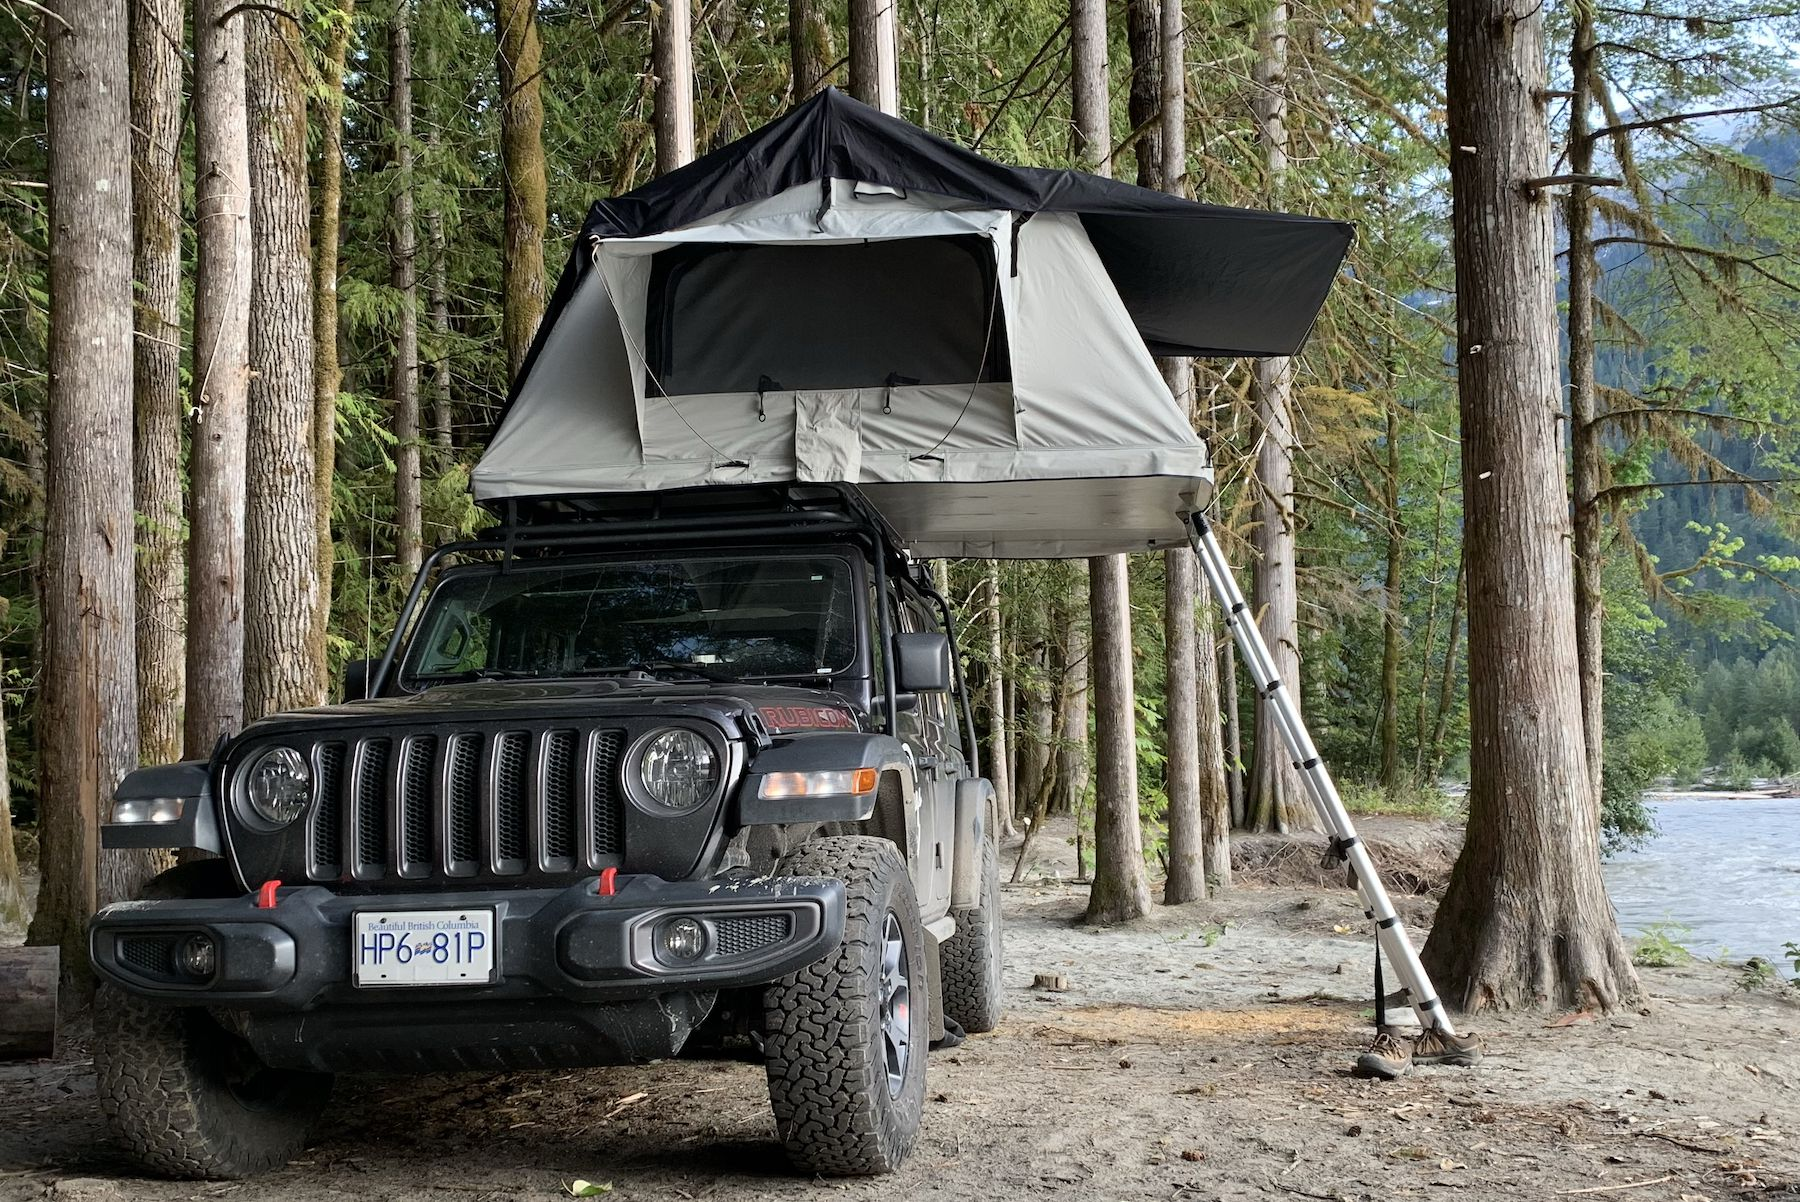 Chads Kyles The Top 5 Overlanding Accessories Even If You Only Go To The Vape Store Driving